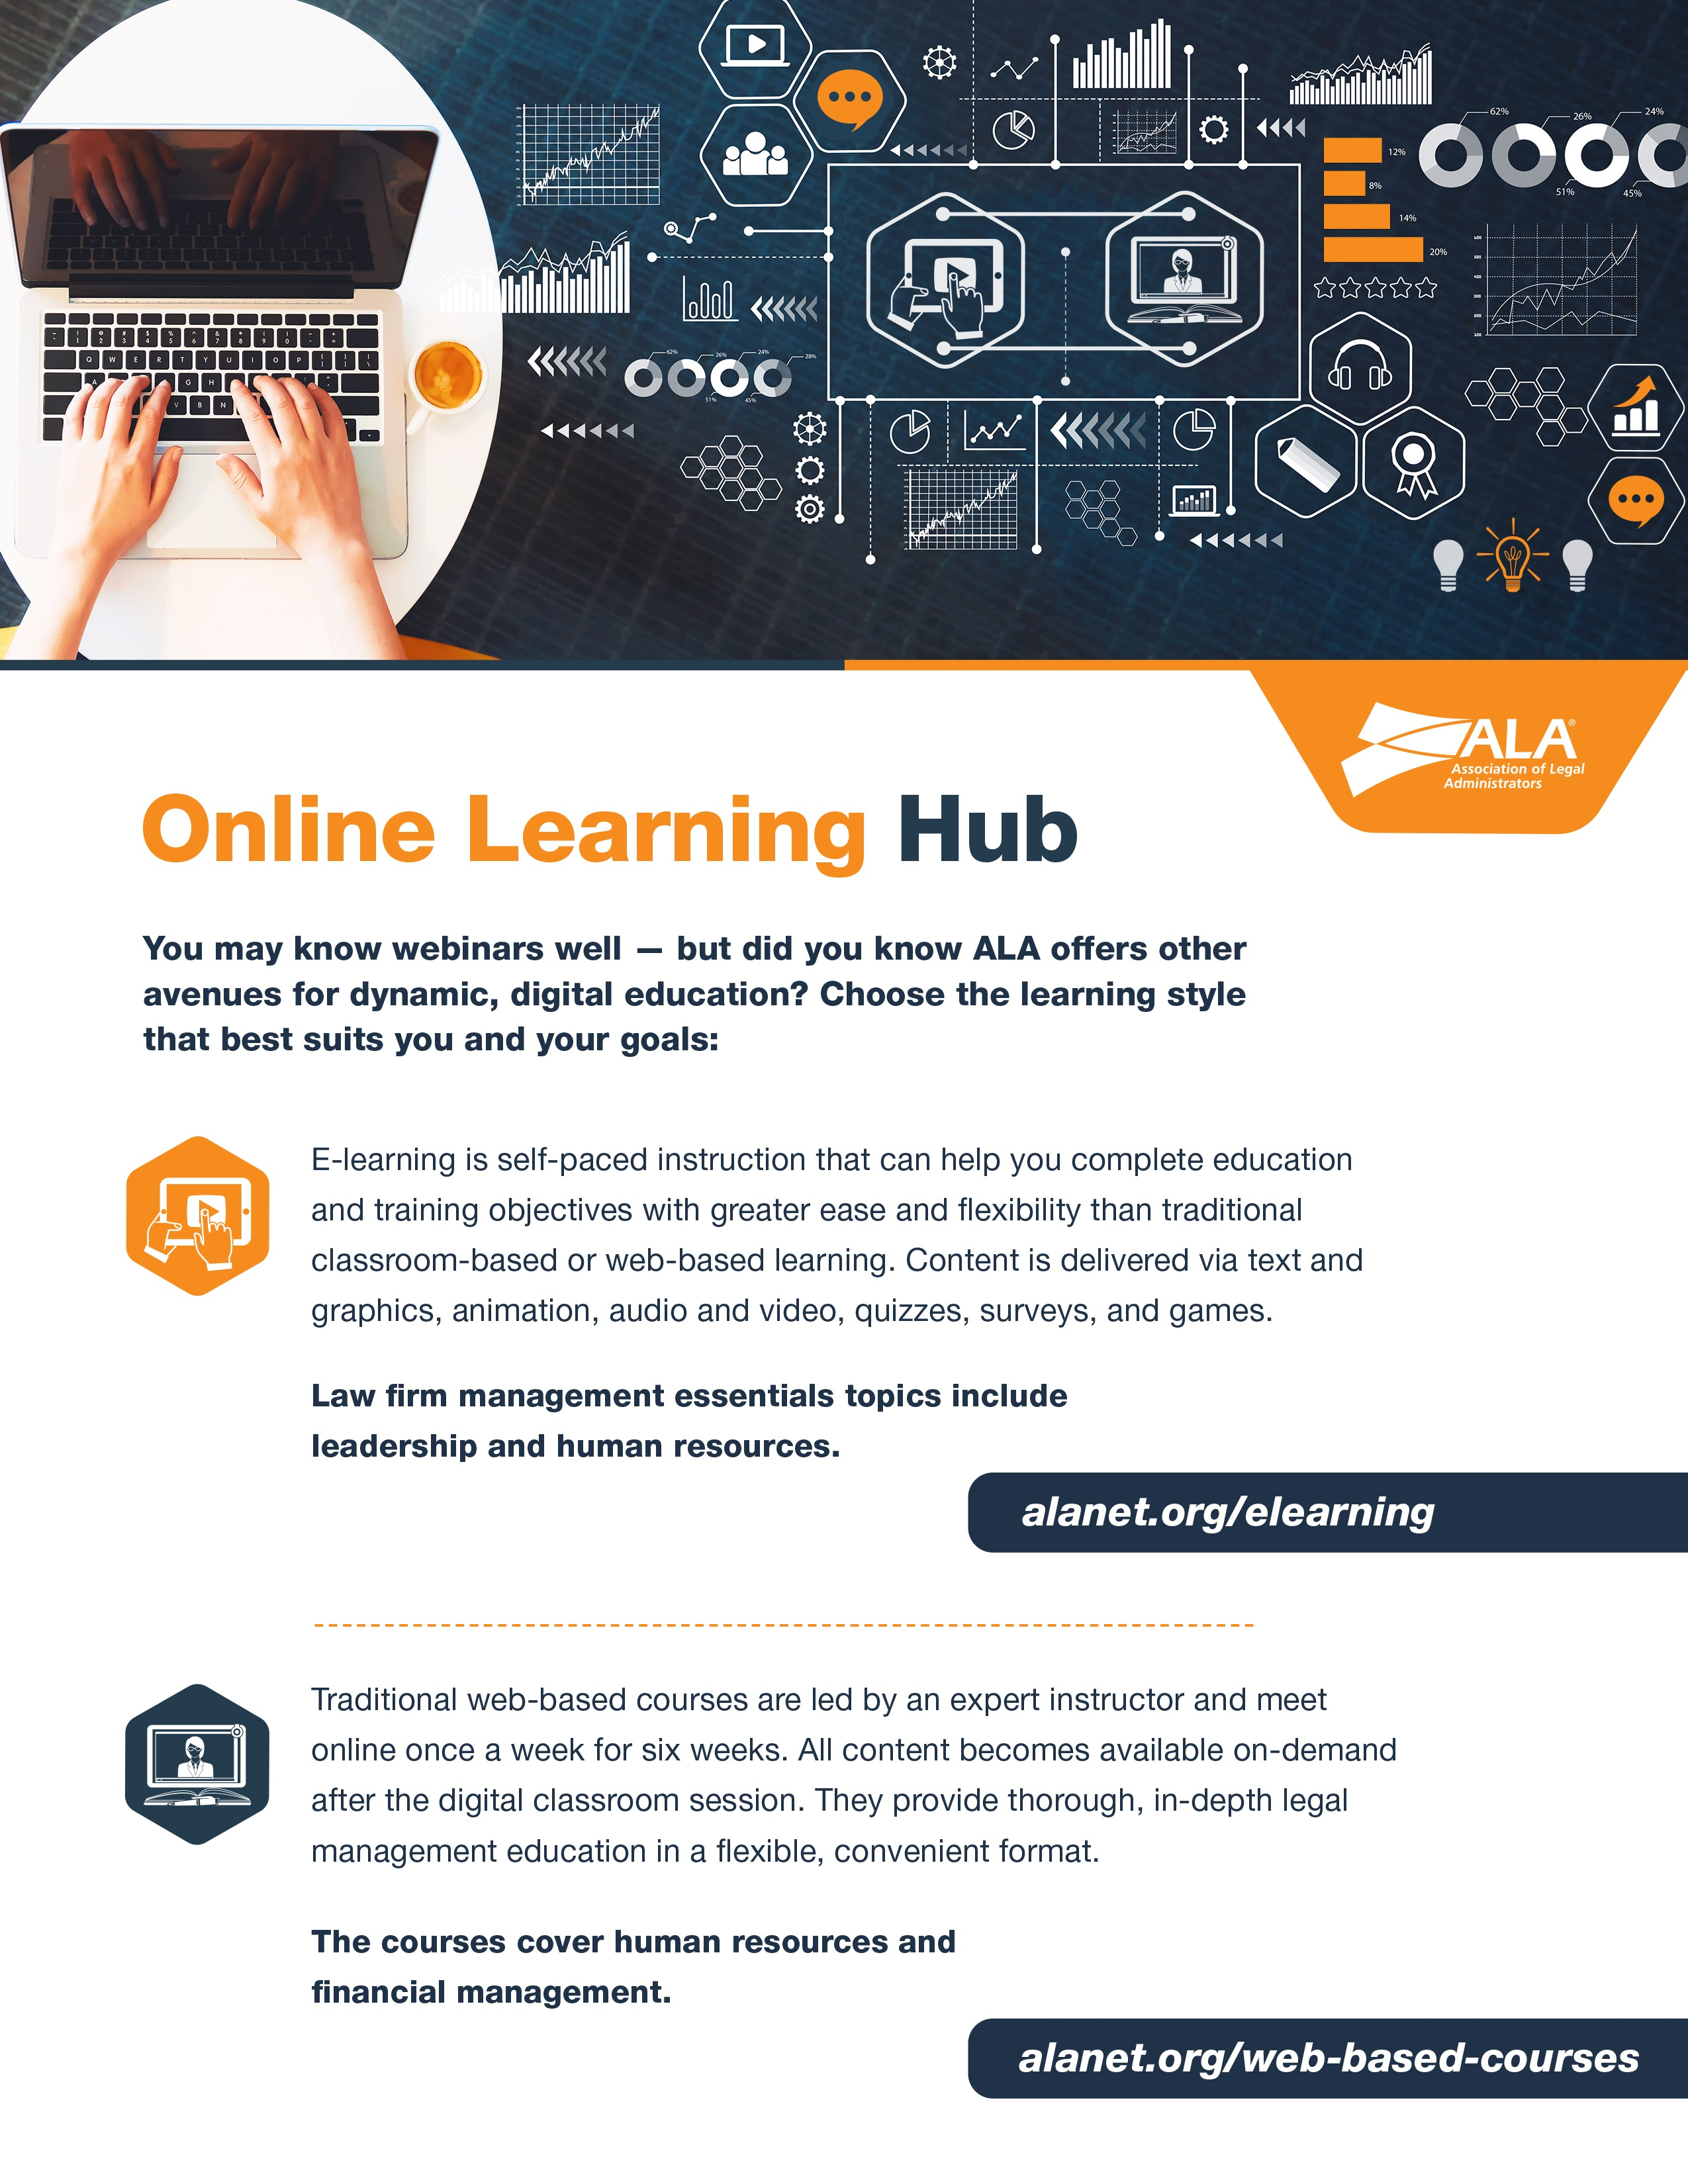 ALA Online Learning Hub